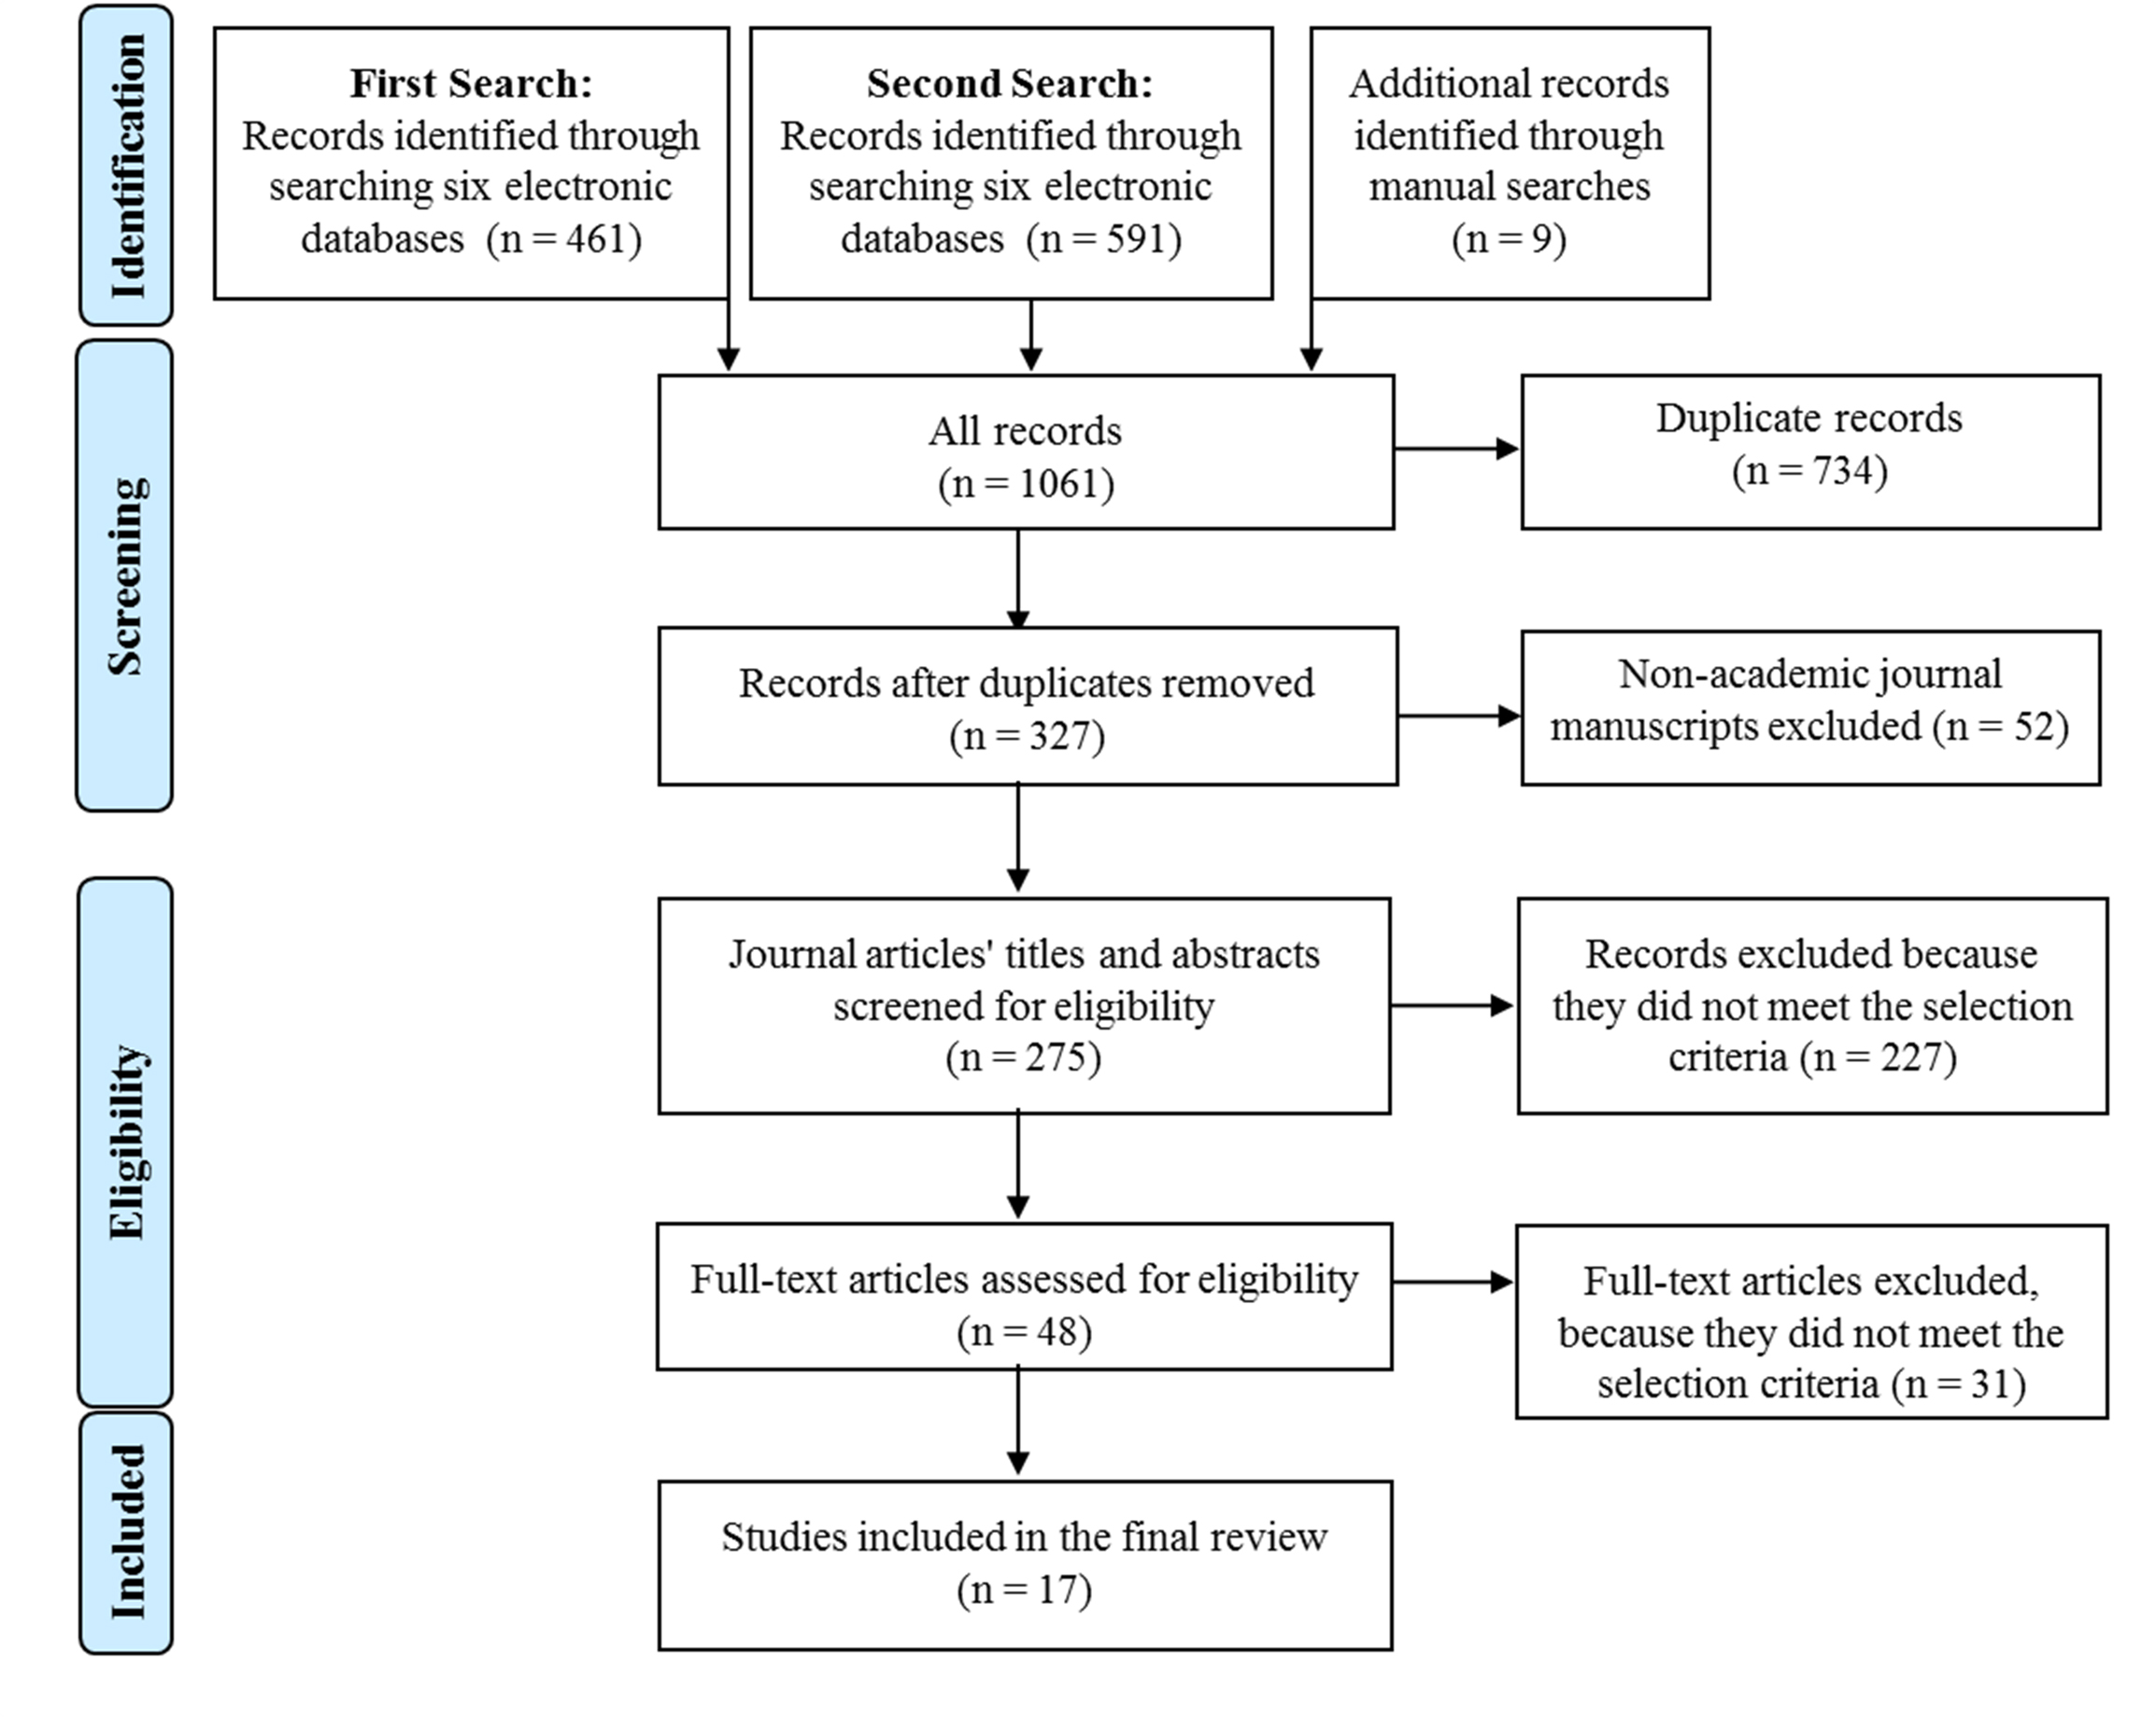 cochrane literature review criteria Cochrane systematic reviews are considered the most rigorous  potentially  biased, uniformly applied preselected inclusion/exclusion criteria.